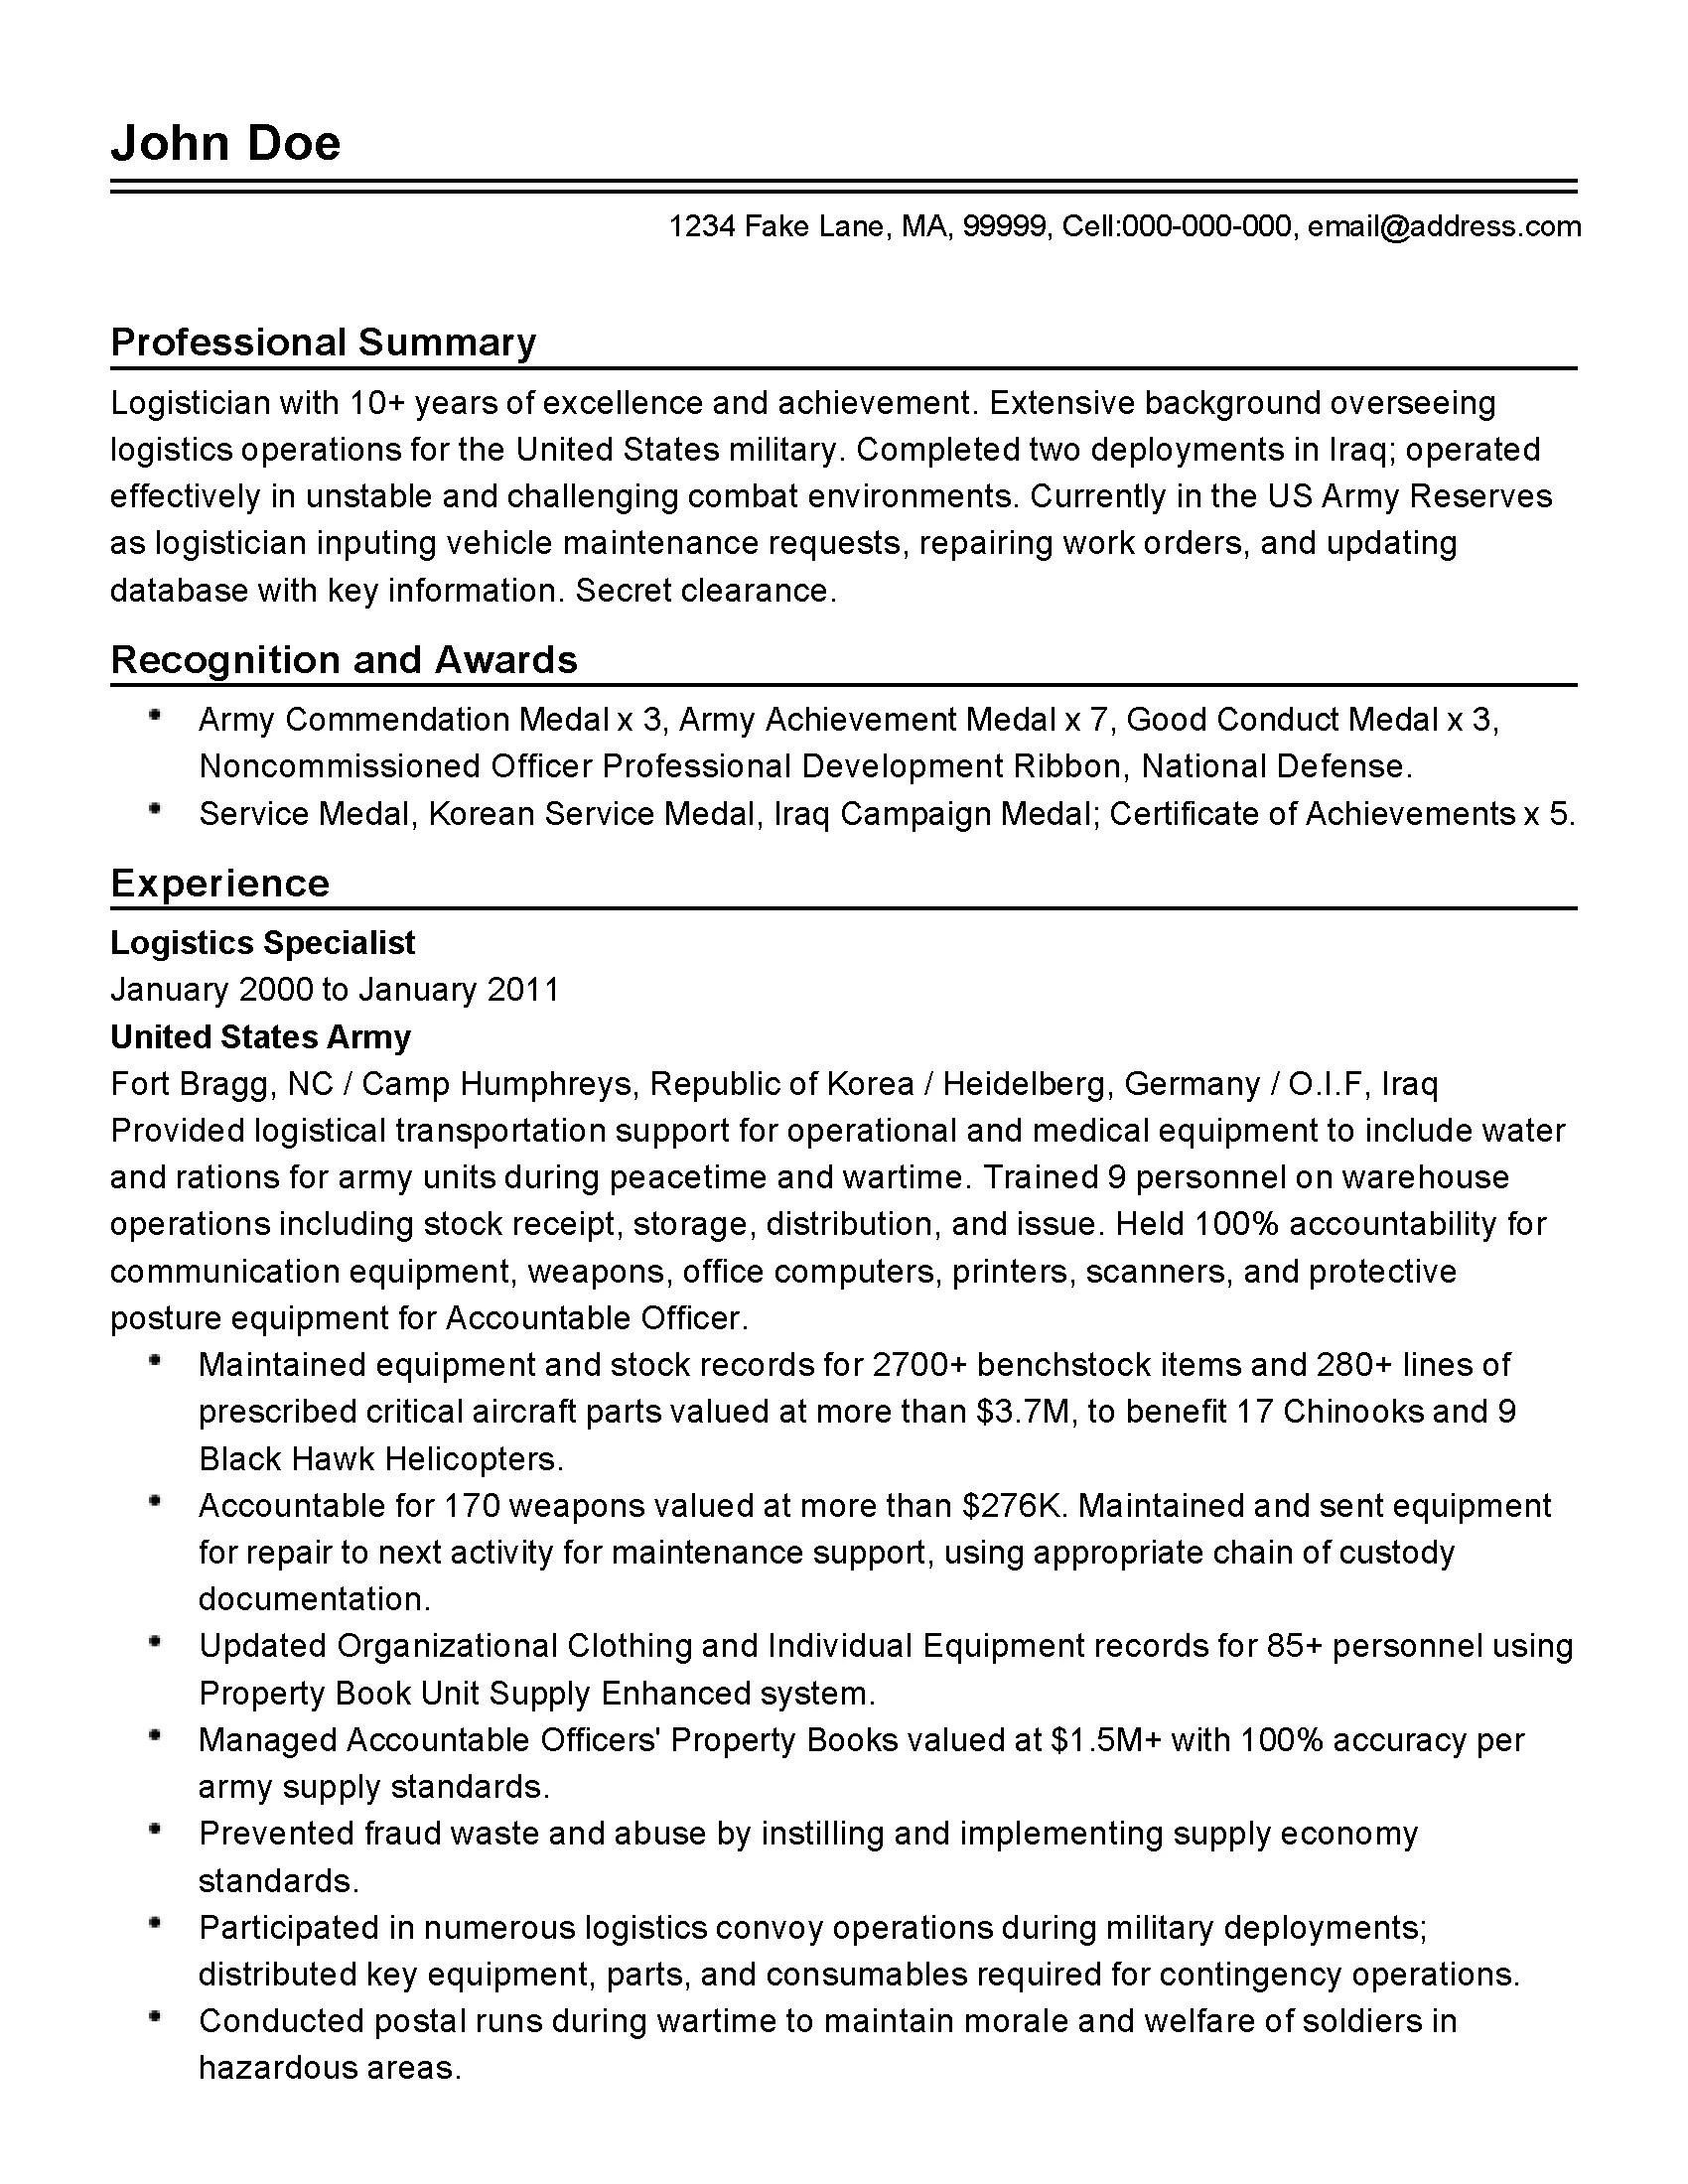 Achievement Resume Examples Professional Military Logistician Templates To Showcase Your